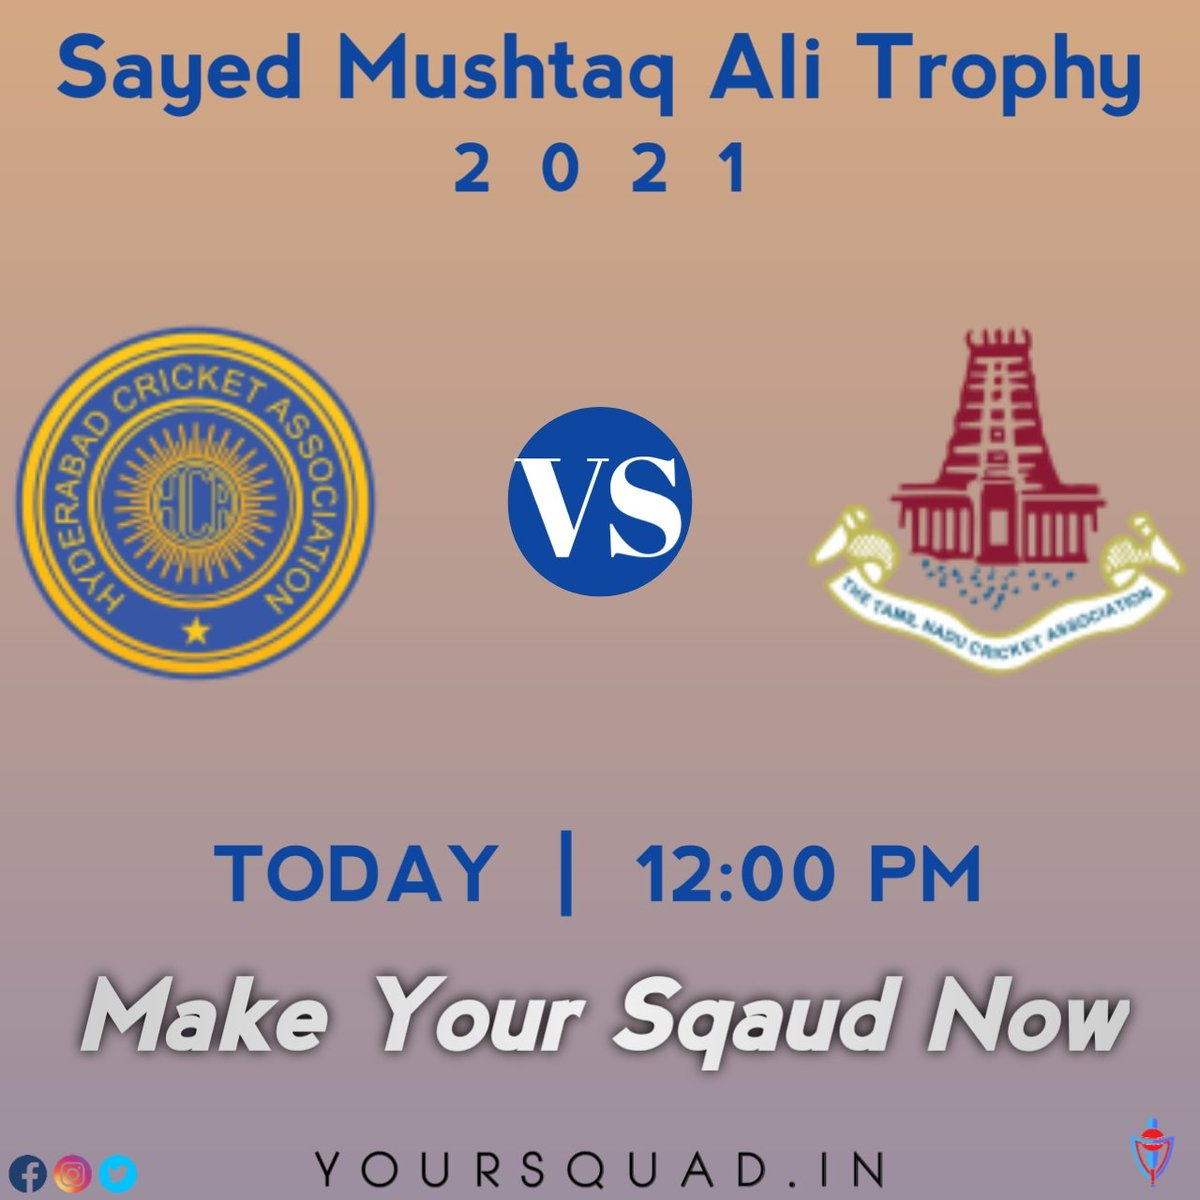 SMAT 2021 🏆  Hyderabad 🆚 Tamil Nadu  ⏰ Match starts at 12:00 pm Make your Sqaud now 🏏 Visit now:  . . #smat2021 #hyderabad #tamilnadu #yoursquad #fantasy #game #team #cricket #fun #gamechanger #icc #TeamIndia